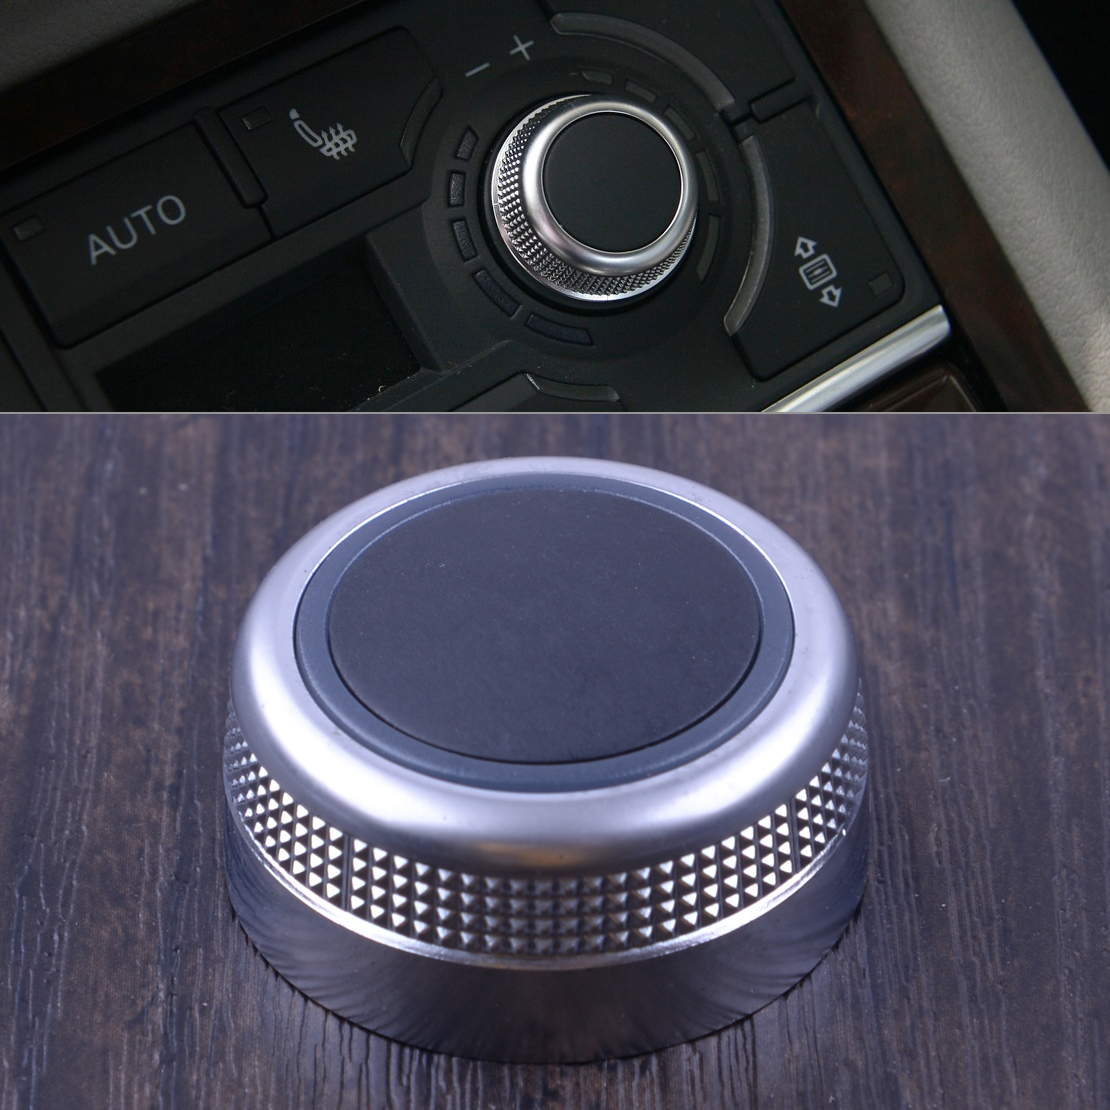 CITALL Chrome Plated Multimedia Rotary Knob Main Menu Control Switch Cover Cap 4F0919069 for <font><b>Audi</b></font> A6 <font><b>A8</b></font> Quattro Q7 2007 <font><b>2008</b></font> image